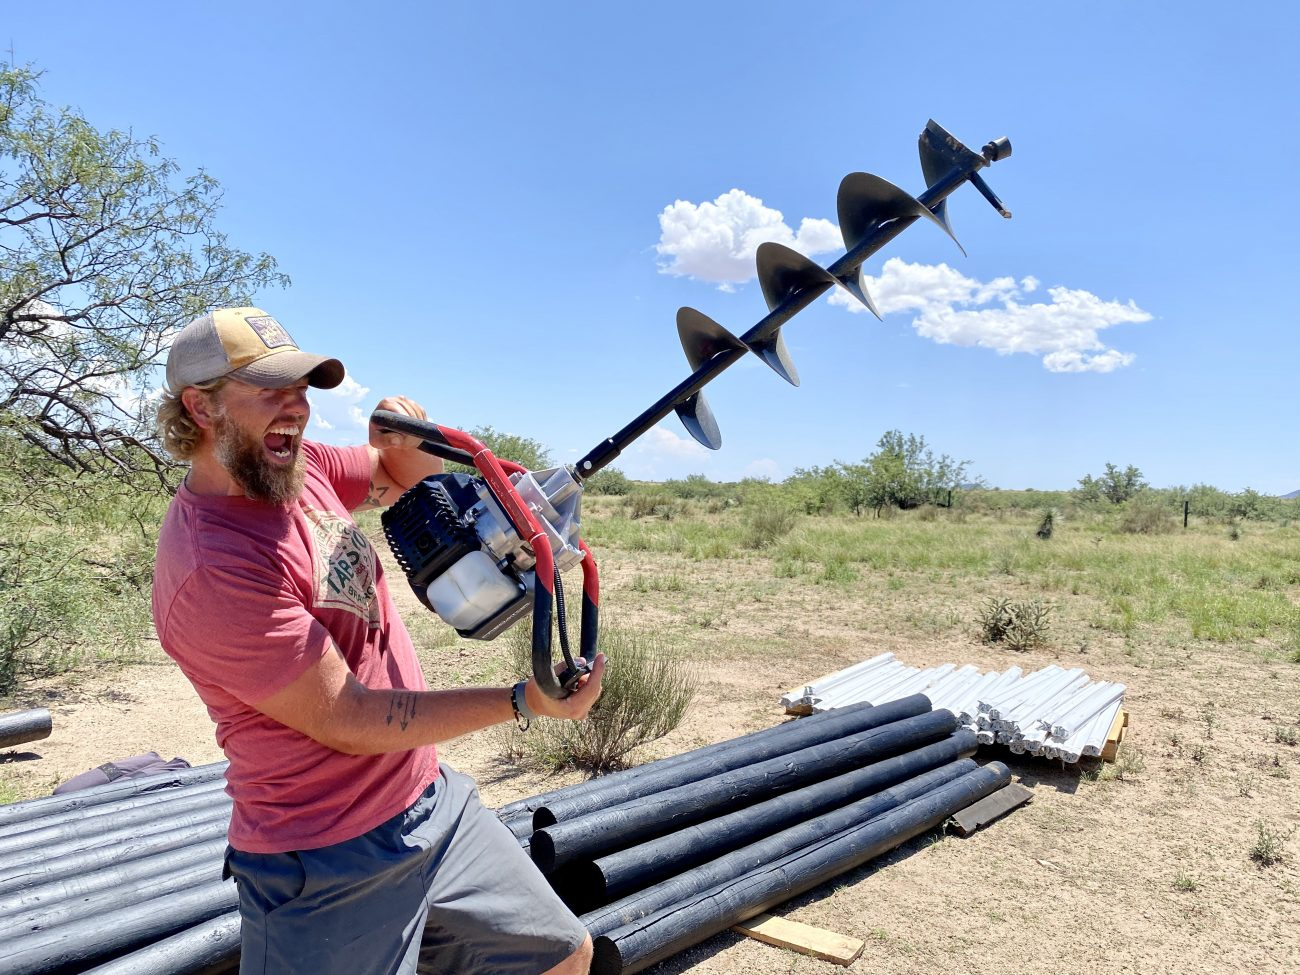 Jonathan with Auger & Fence Posts